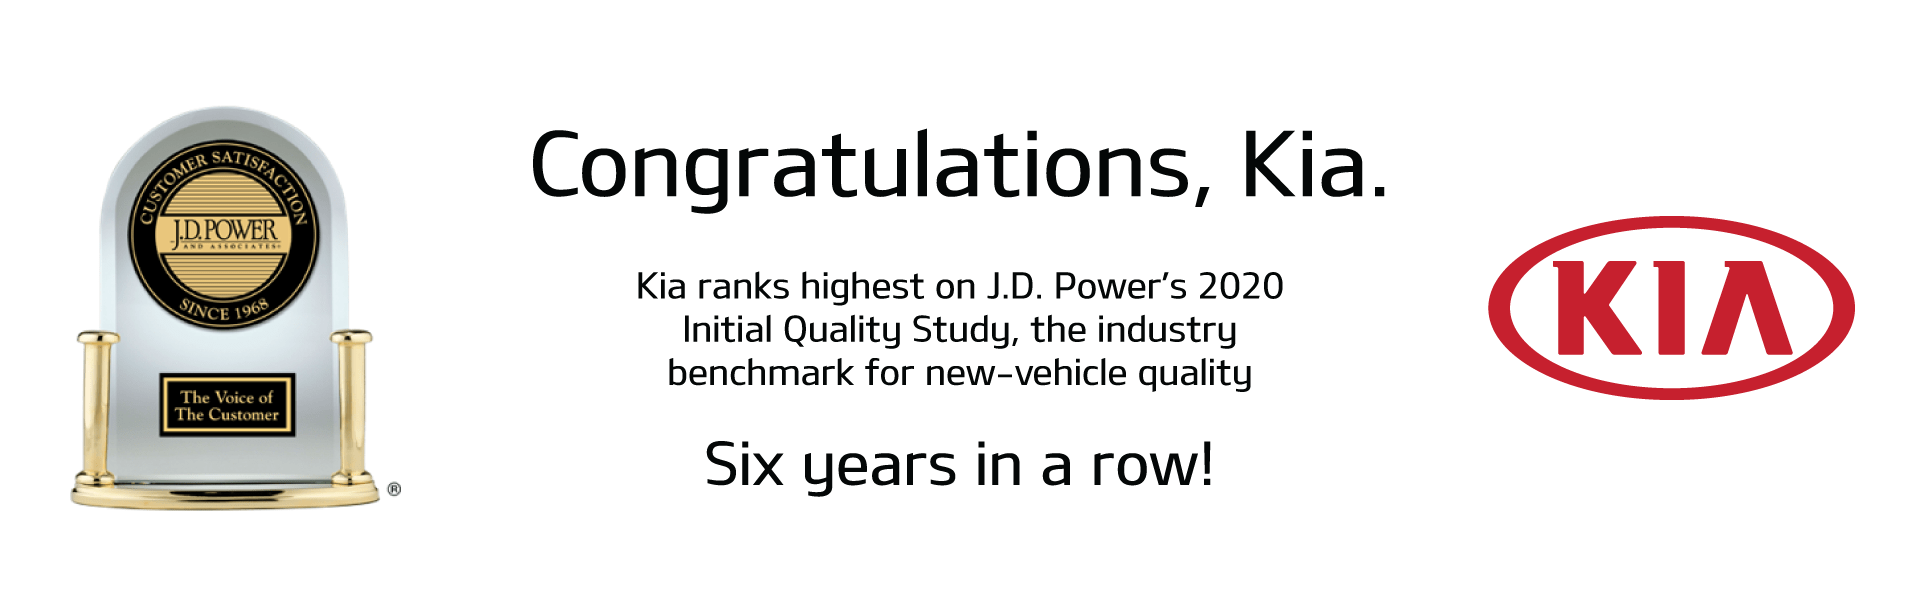 JD Power 2020